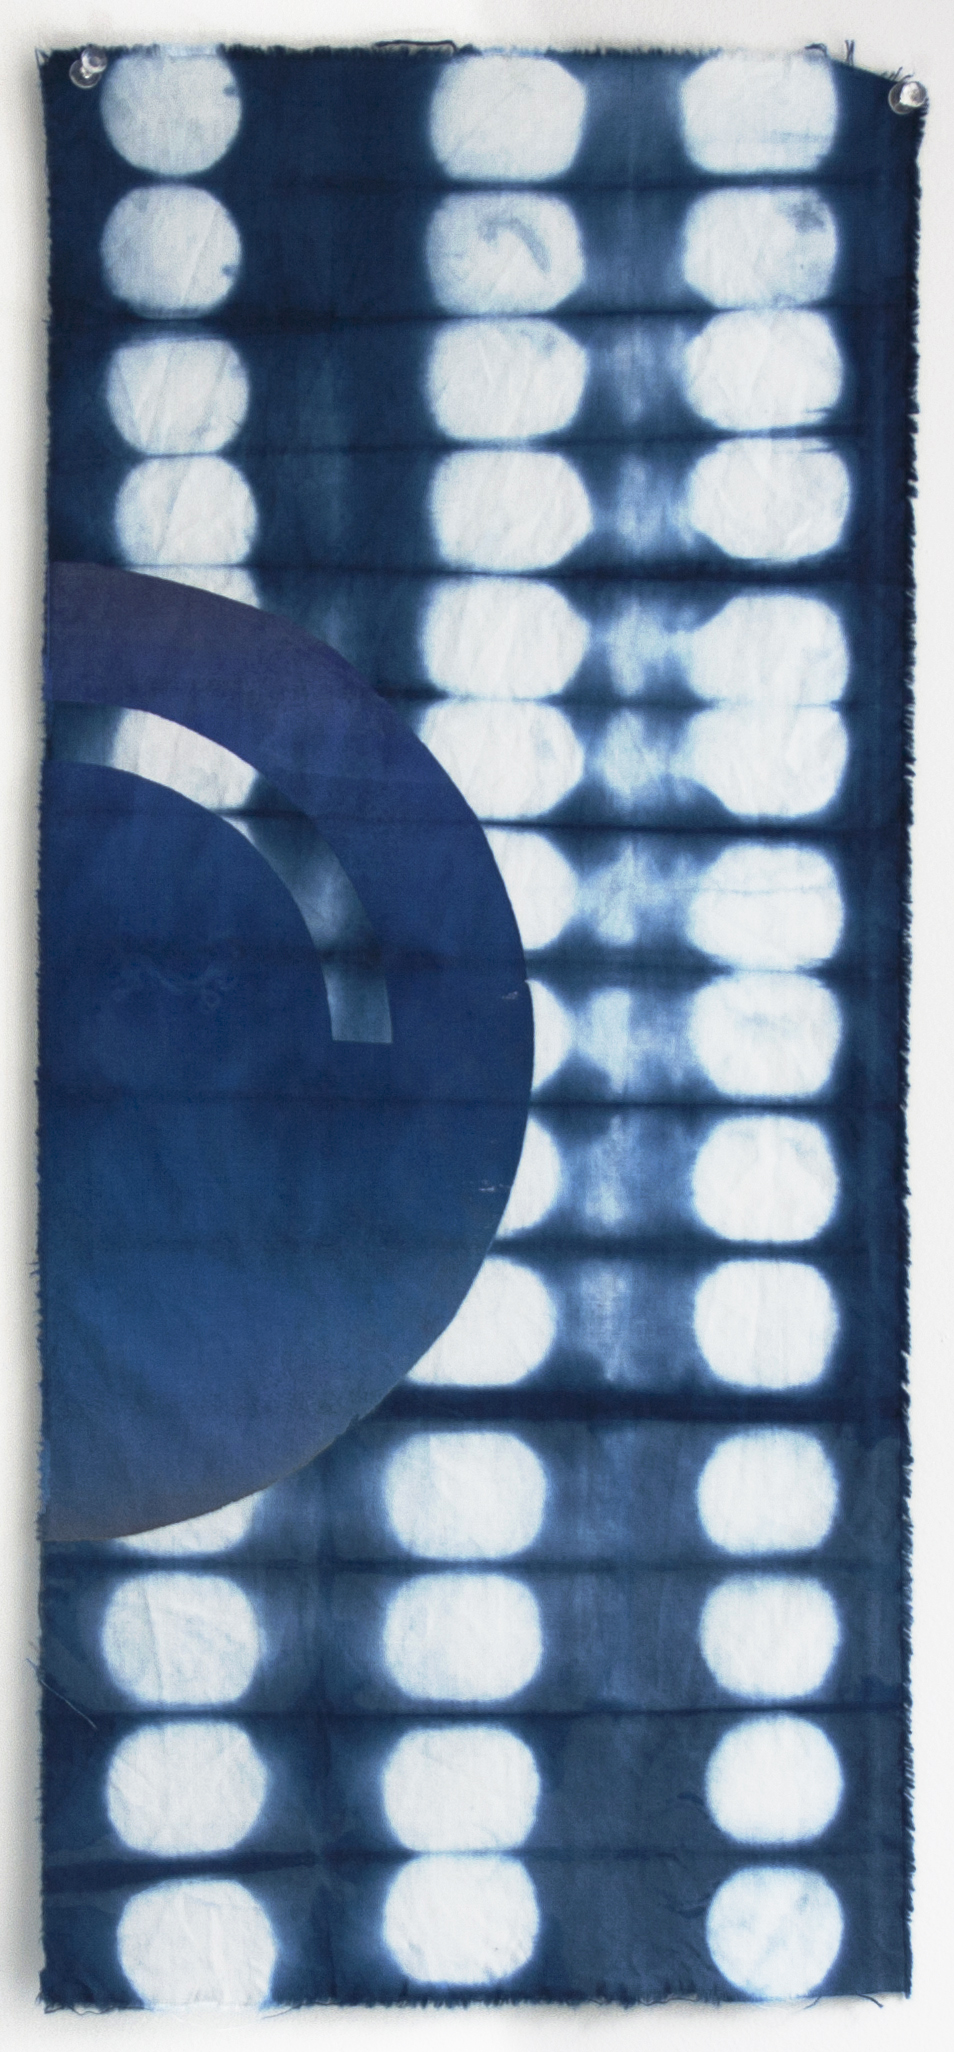 Lunar Phase Shibori 9.5 x 21 in  Natural indigo dye shibori, and screenprint on cotton 2017